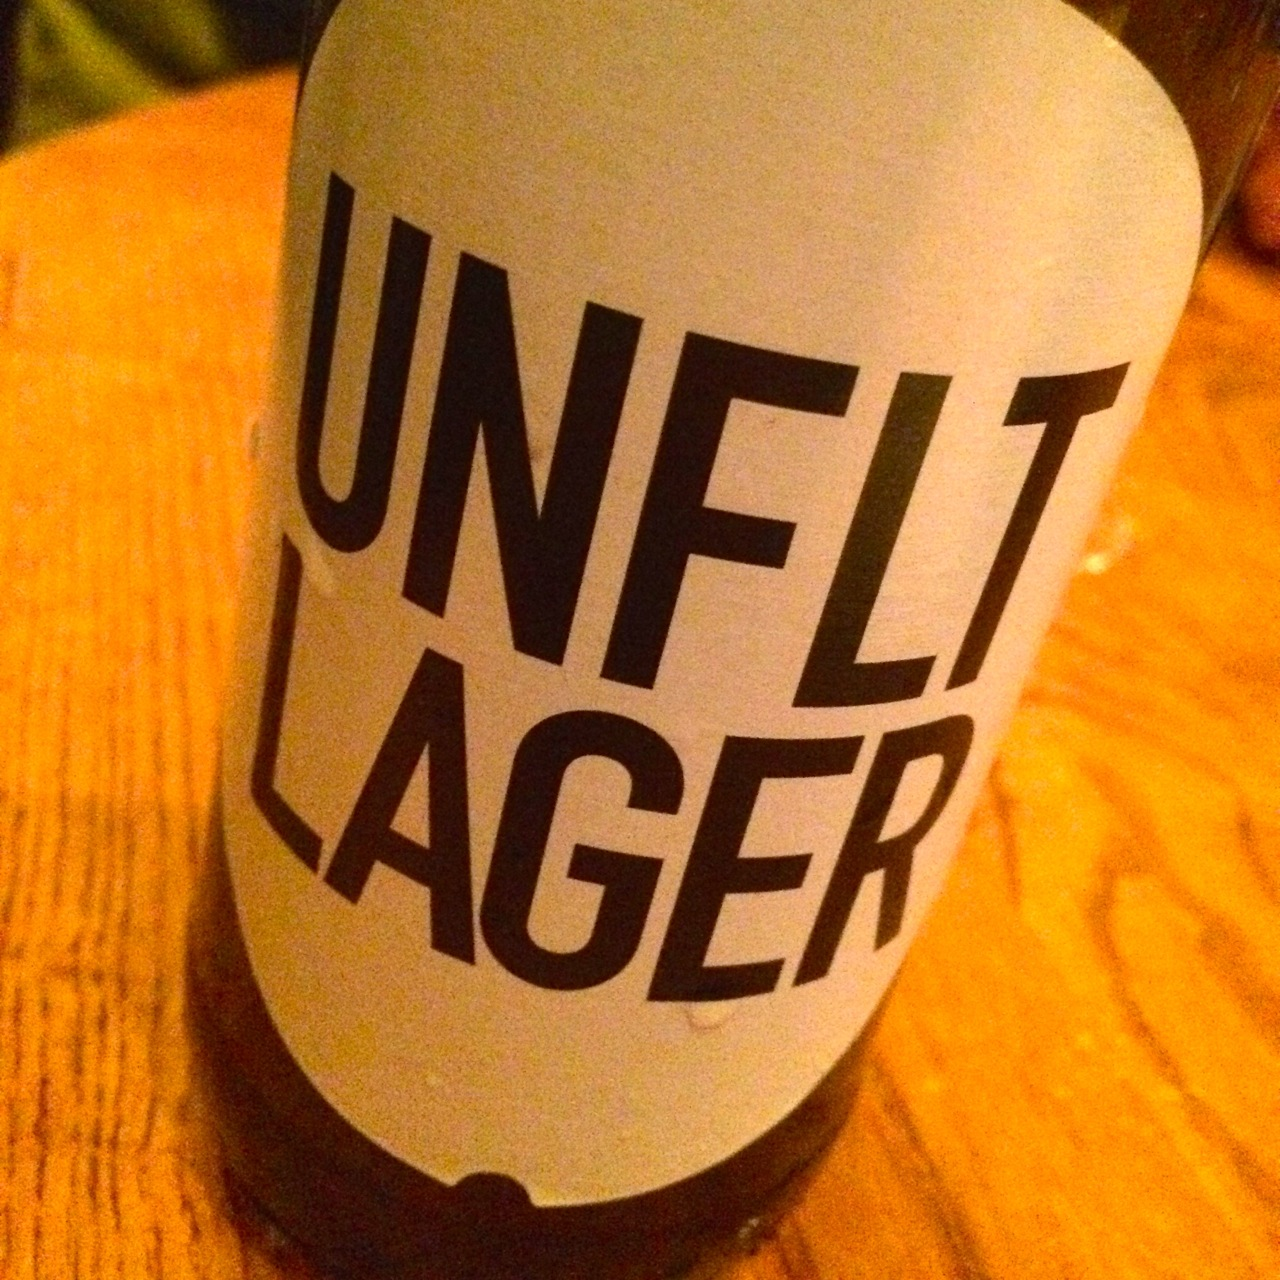 http://fatgayvegan.com/wp-content/uploads/2015/07/unfiltered-lager-and-union.jpg